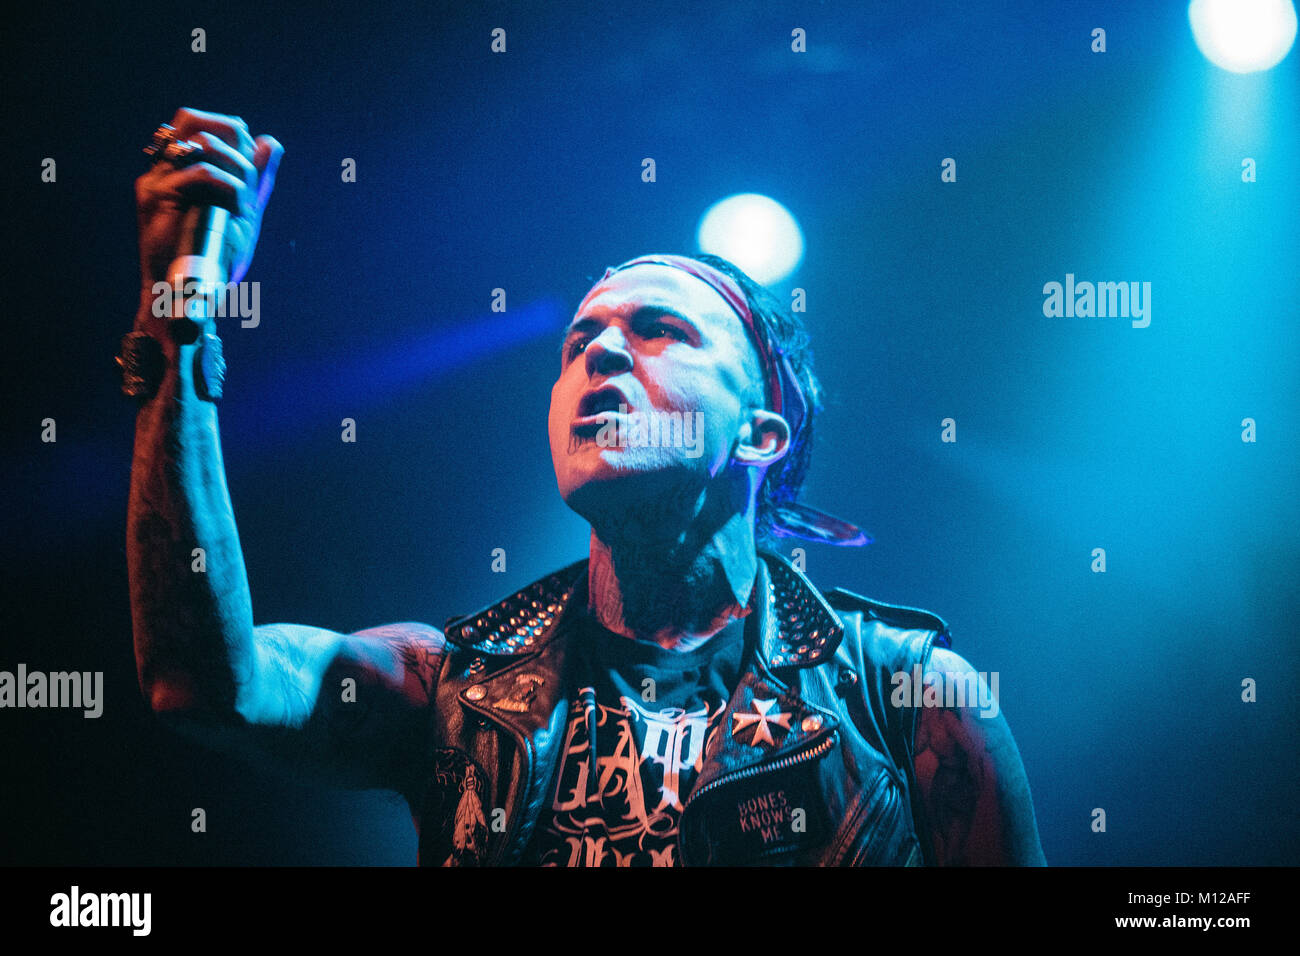 The American rapper and lyricist Michael Wayne Atha is better known by his stage name Yelawolf and here pictured Stock Photo